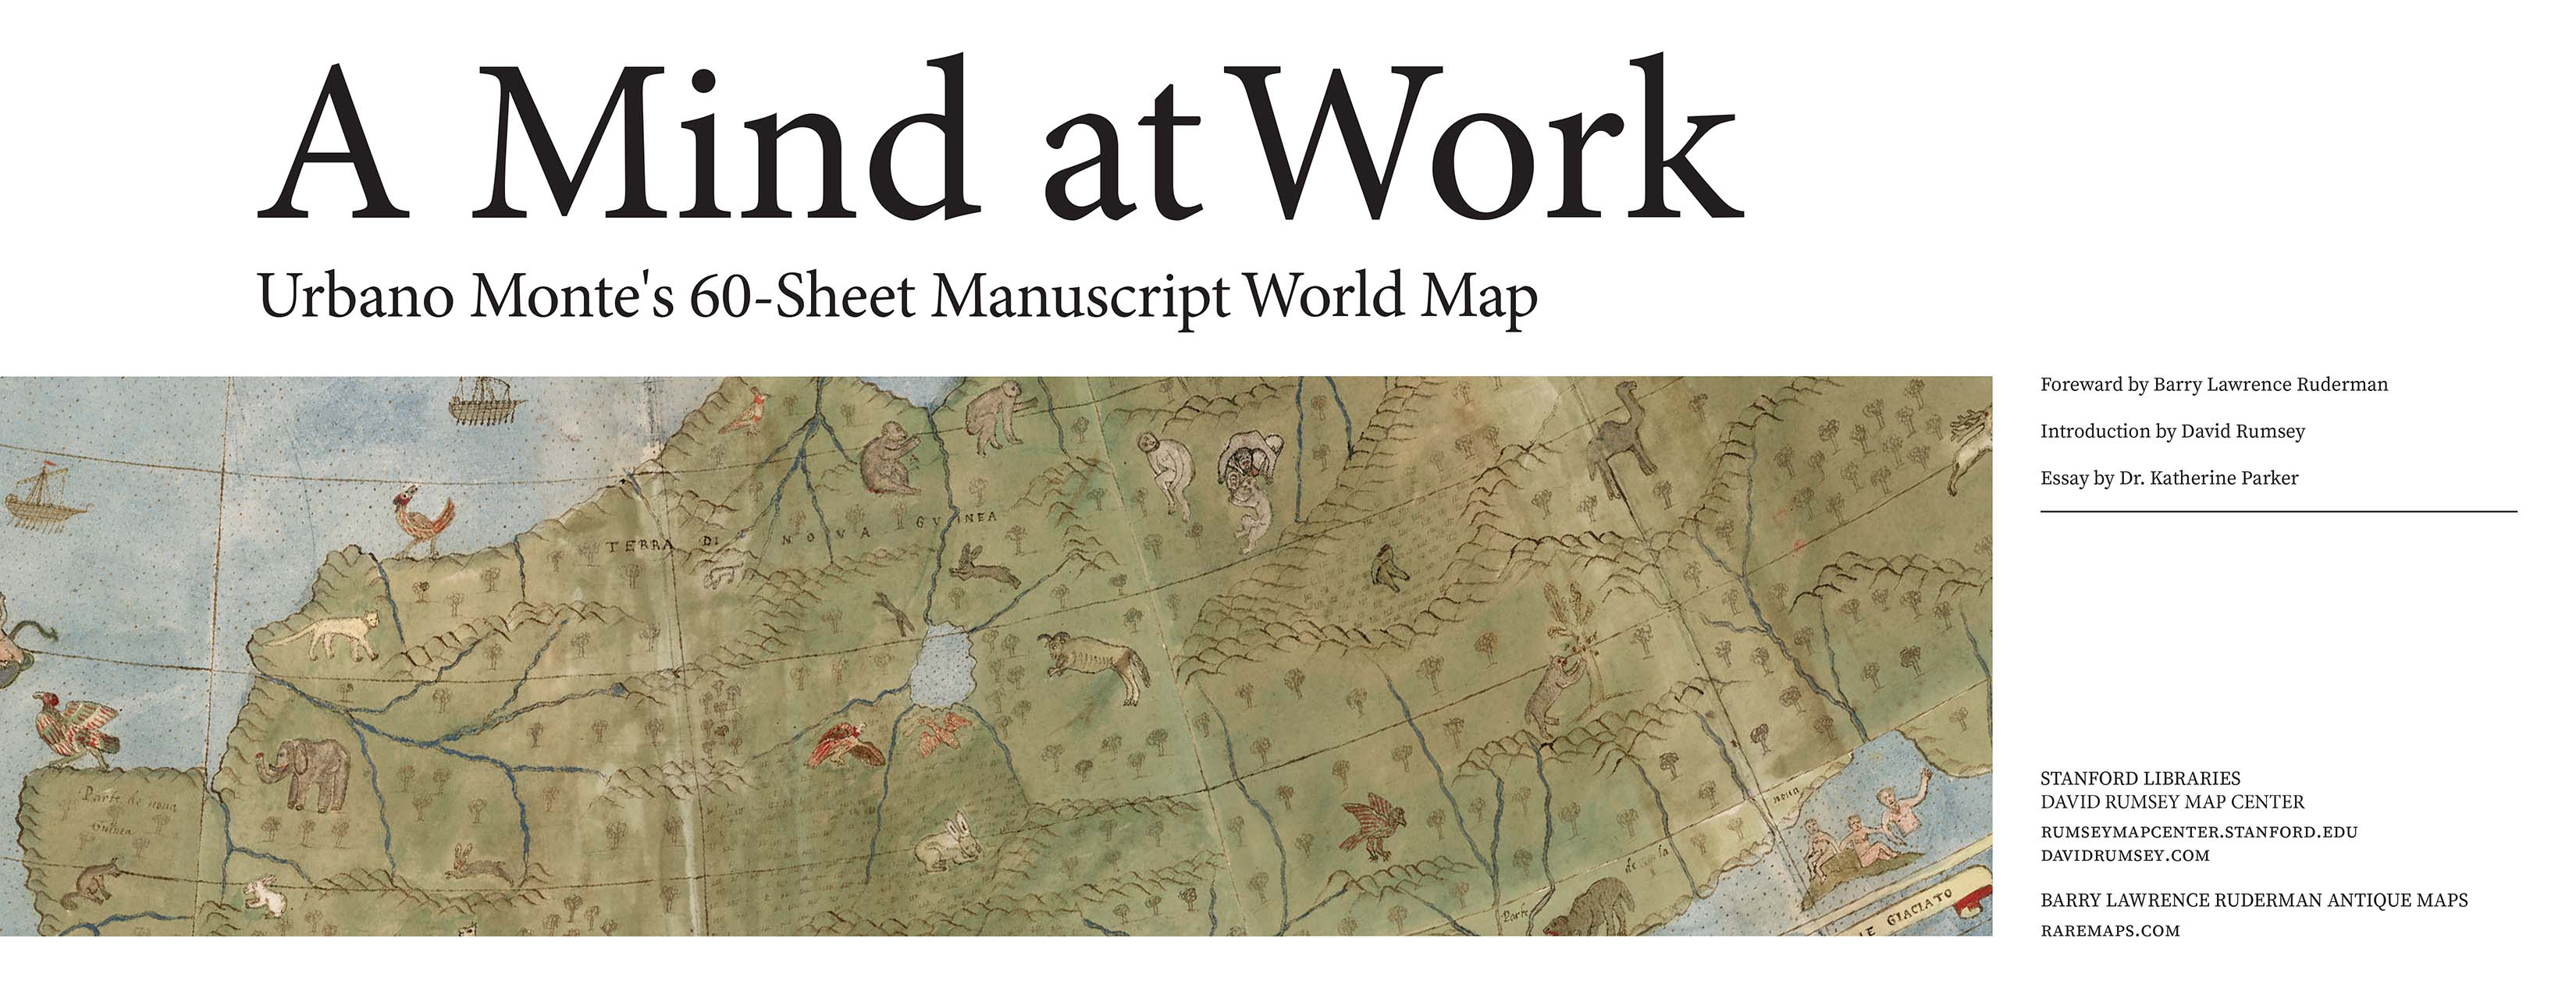 David rumsey historical map collection news read pdf a mind at work urbano montes 60 sheet manuscript world map forward by barry lawrence ruderman introduction by david rumsey gumiabroncs Gallery